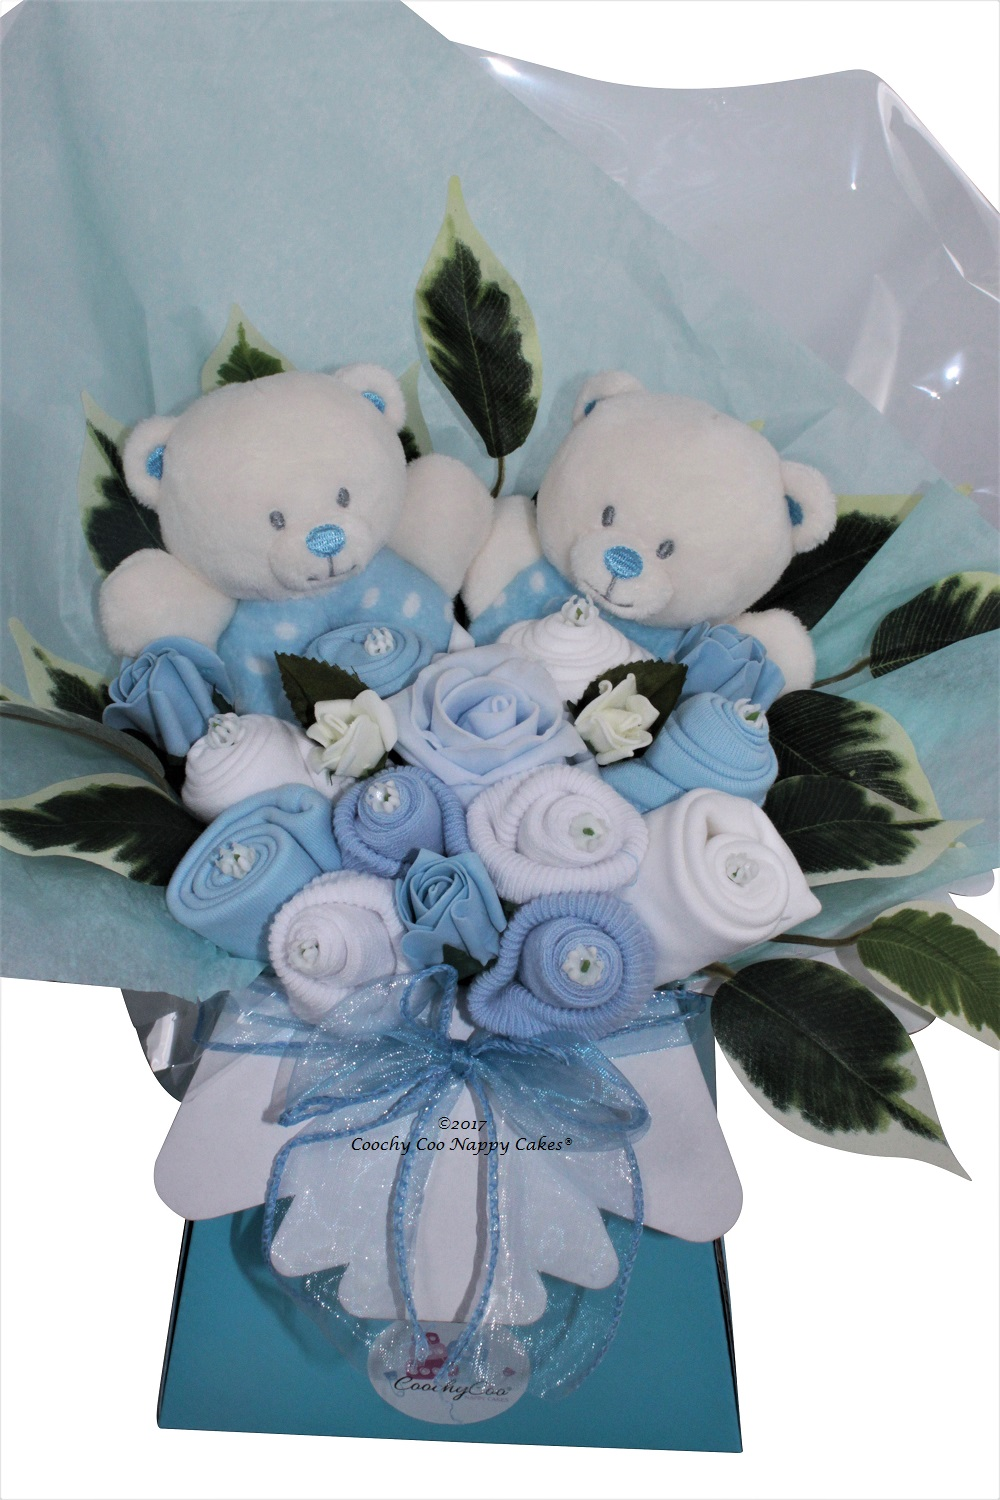 Twin baby boy clothes bouquet close up